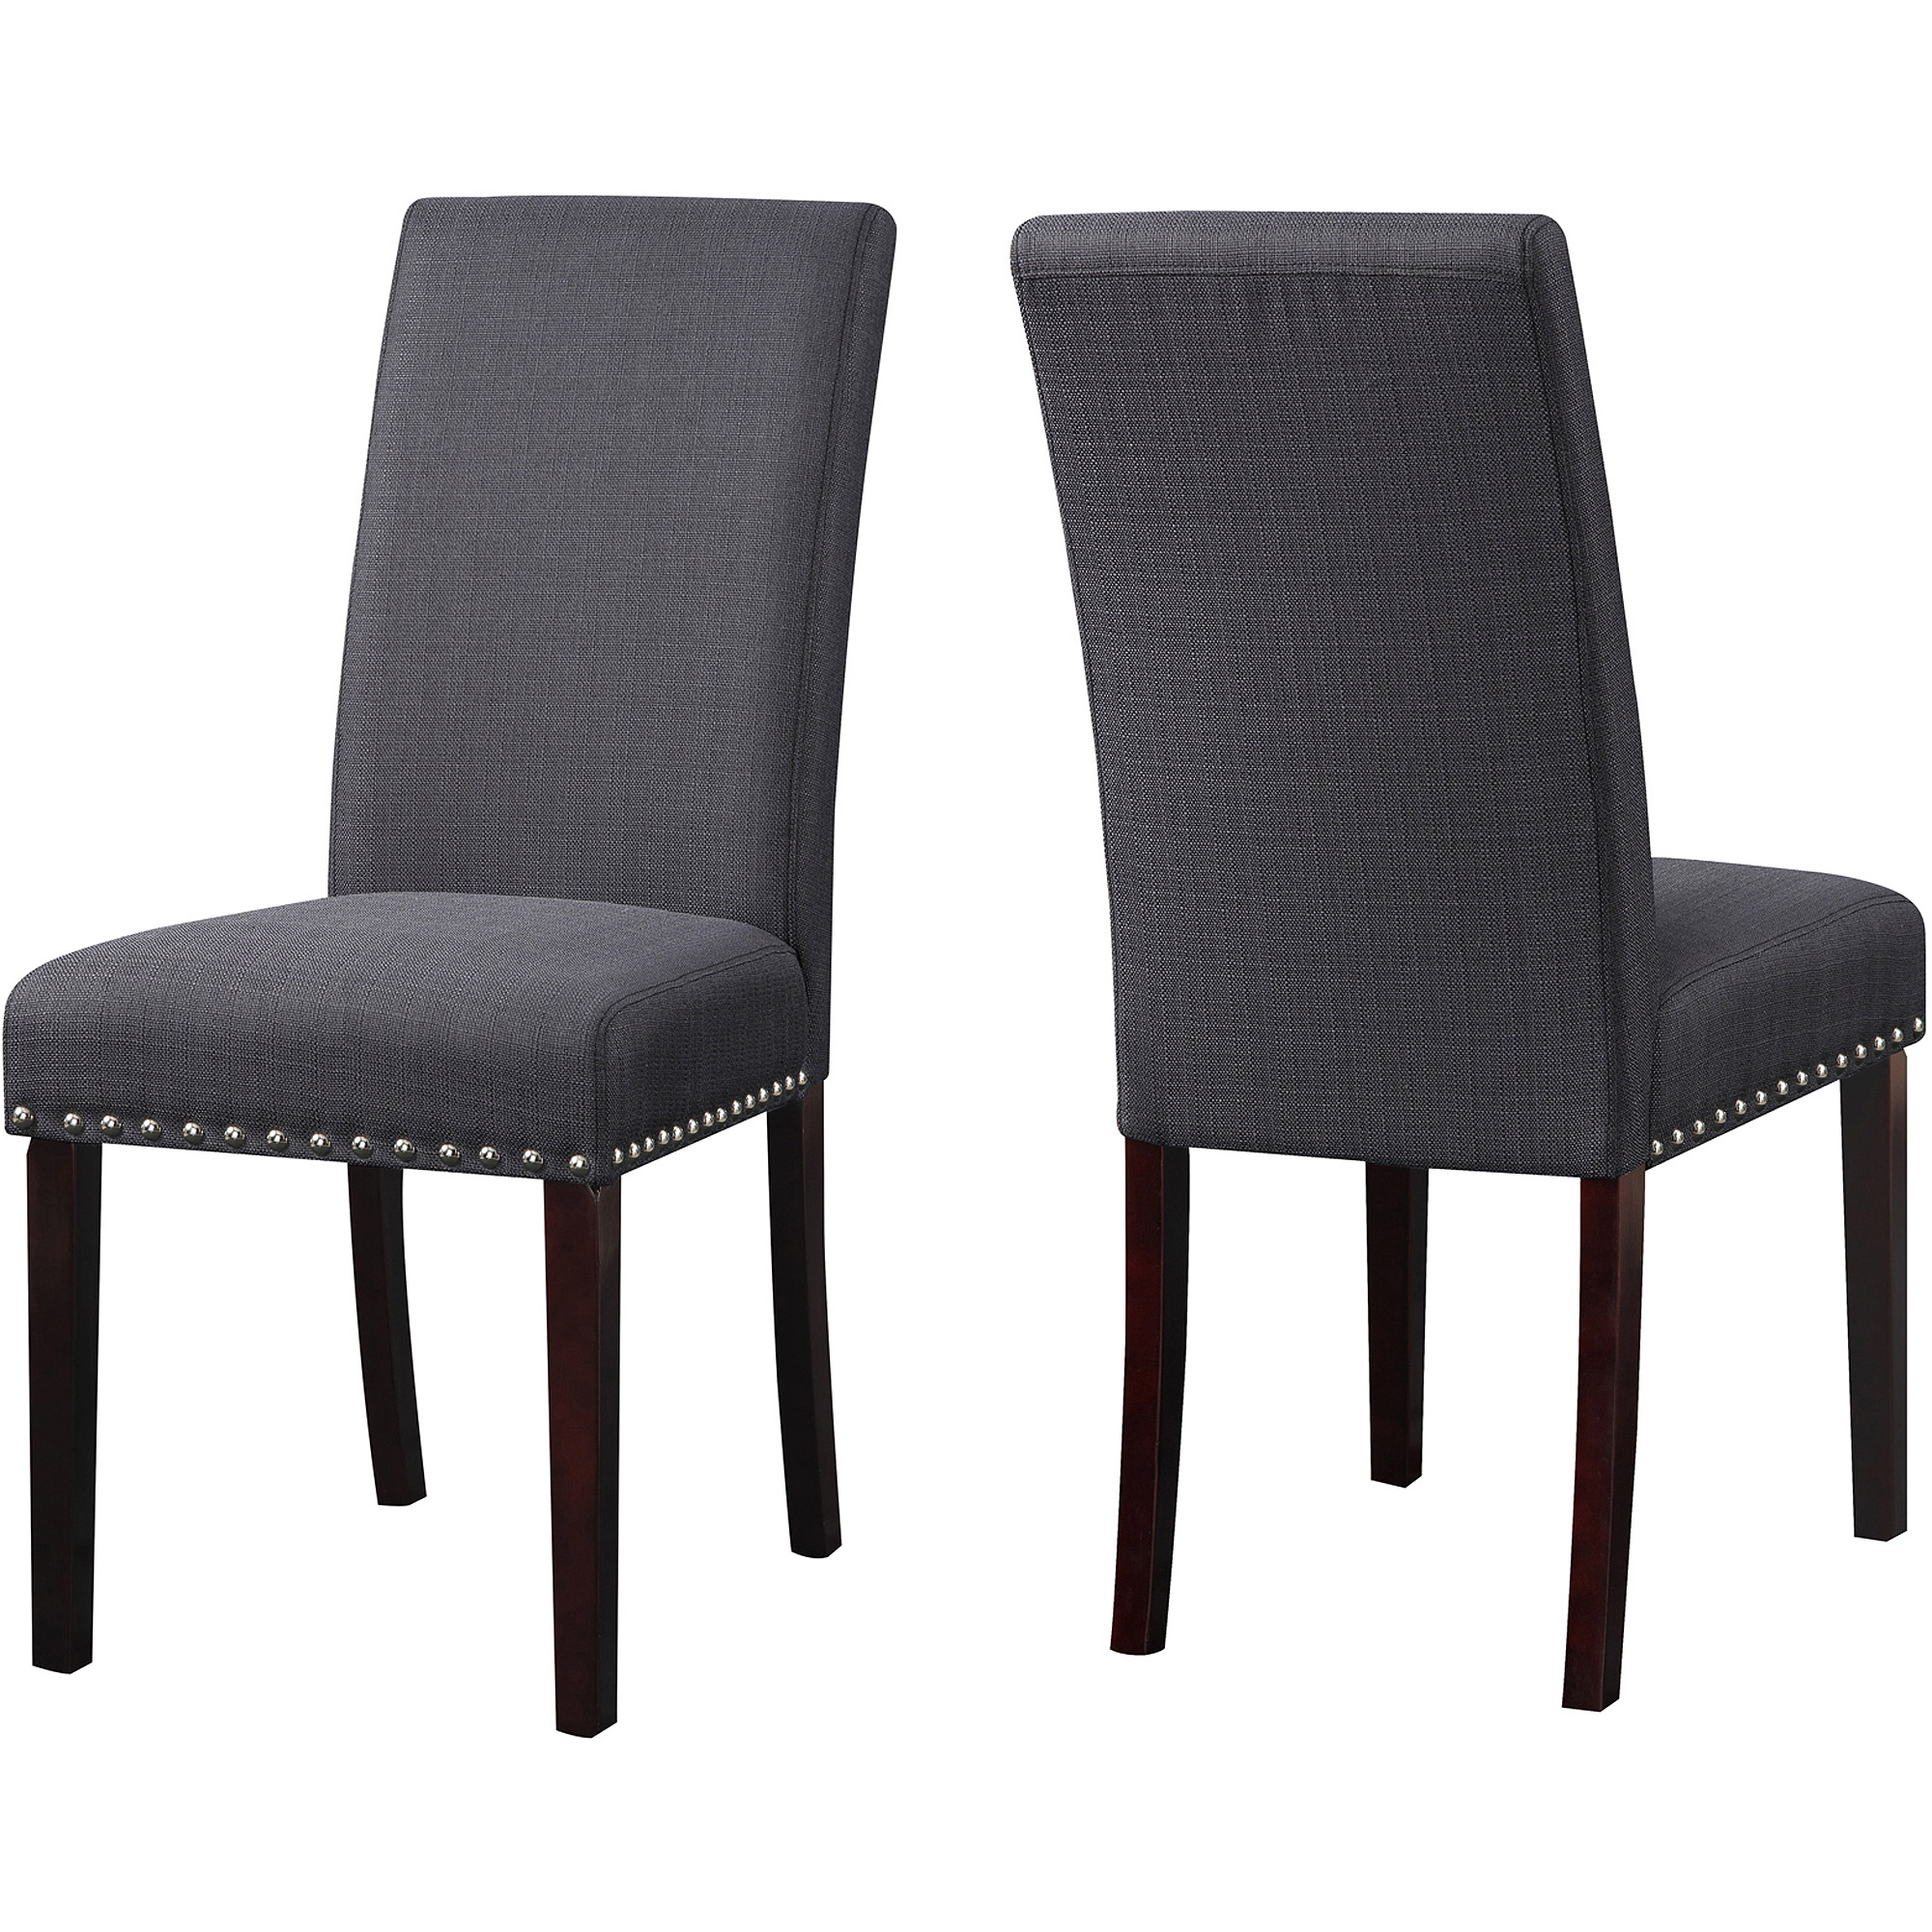 Dining Chairs dhi nice nail head upholstered dining chair, set of 2, multiple